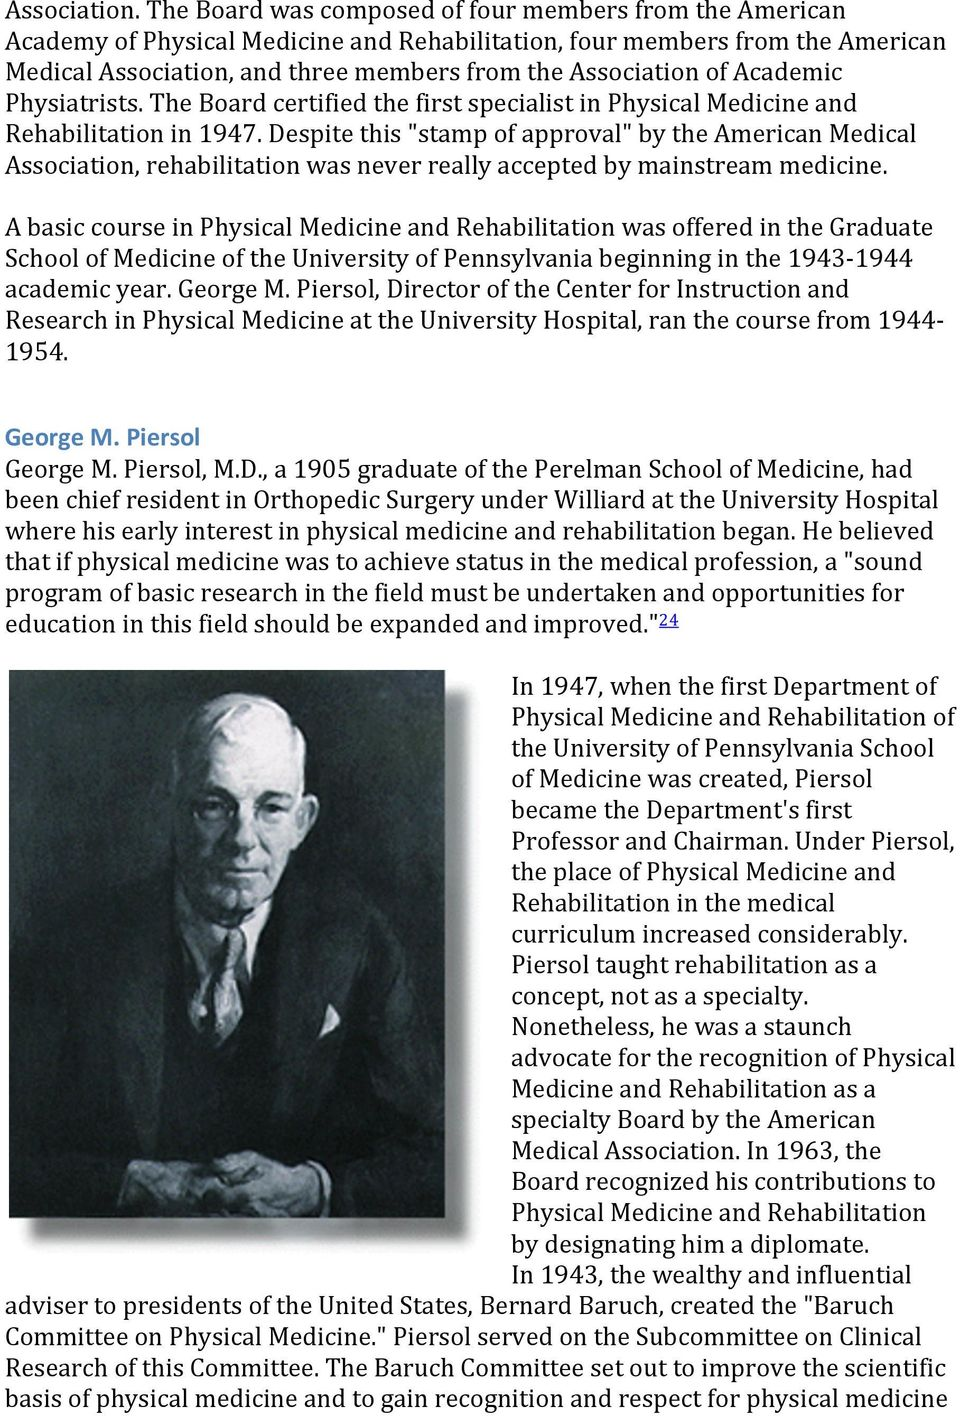 Academic Physiatrists. The Board certified the first specialist in Physical Medicine and Rehabilitation in 1947.